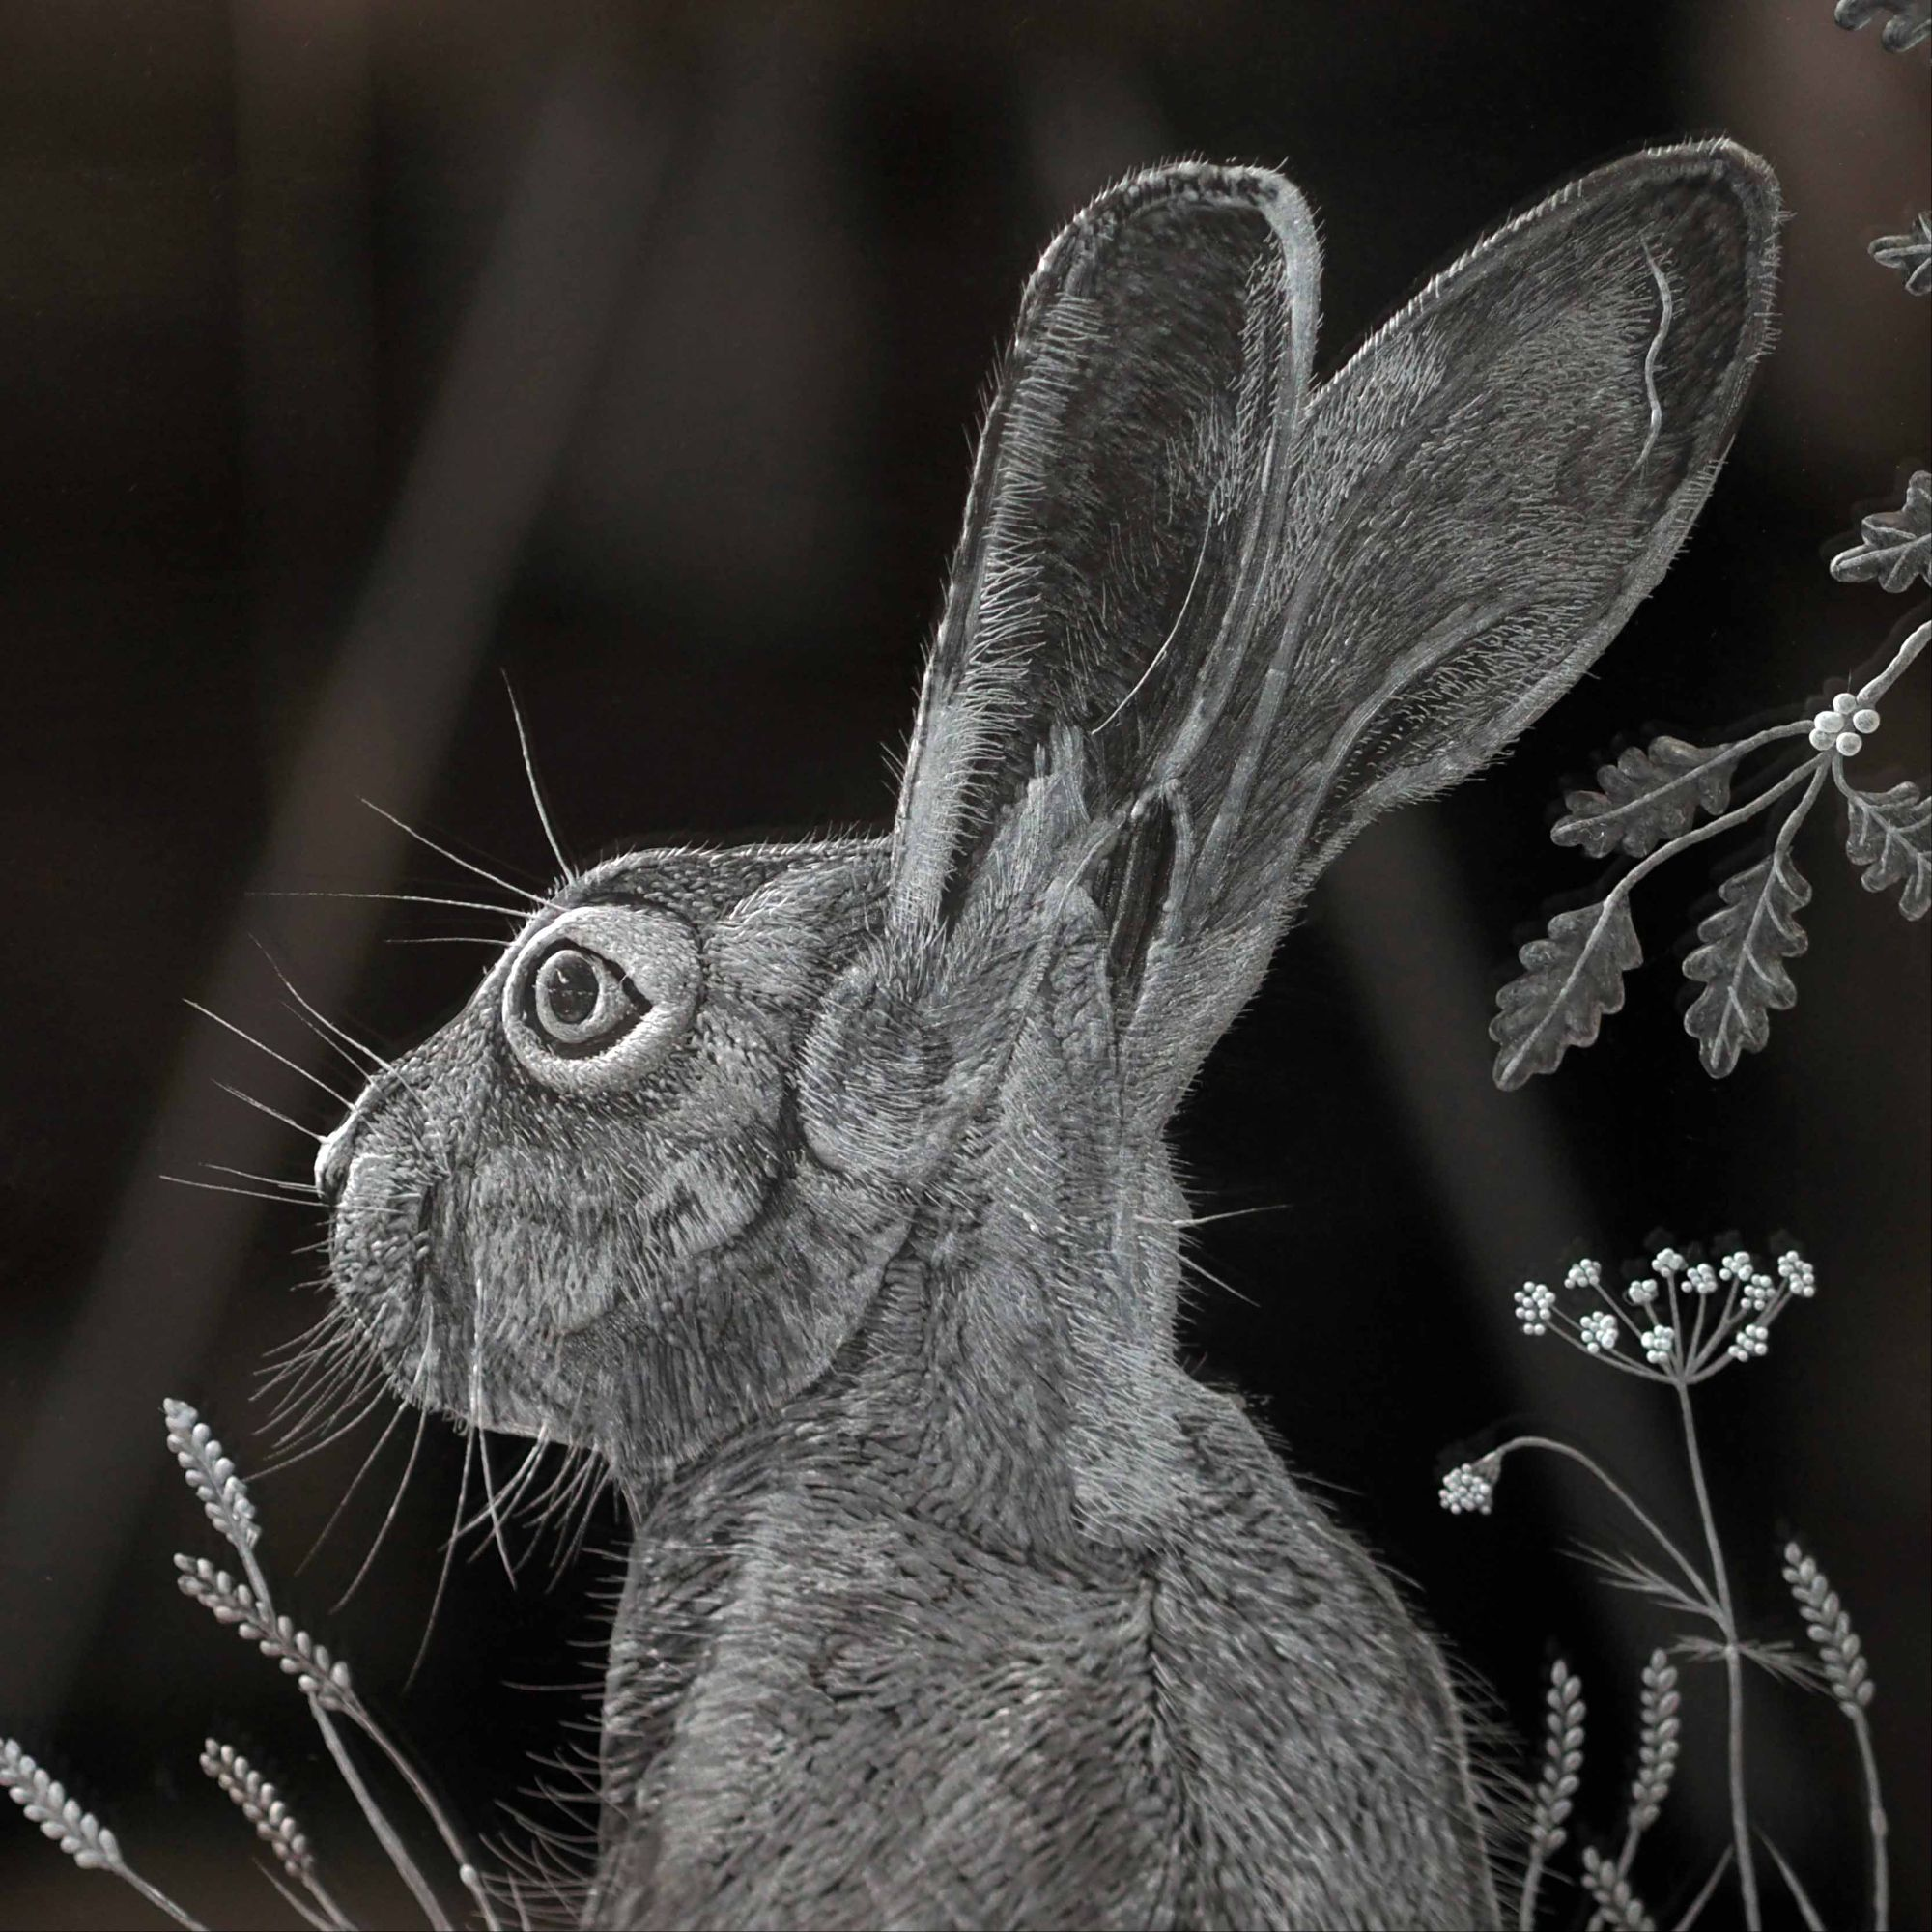 HARE WINDOW PANEL ENGRAVING CLOSE UP